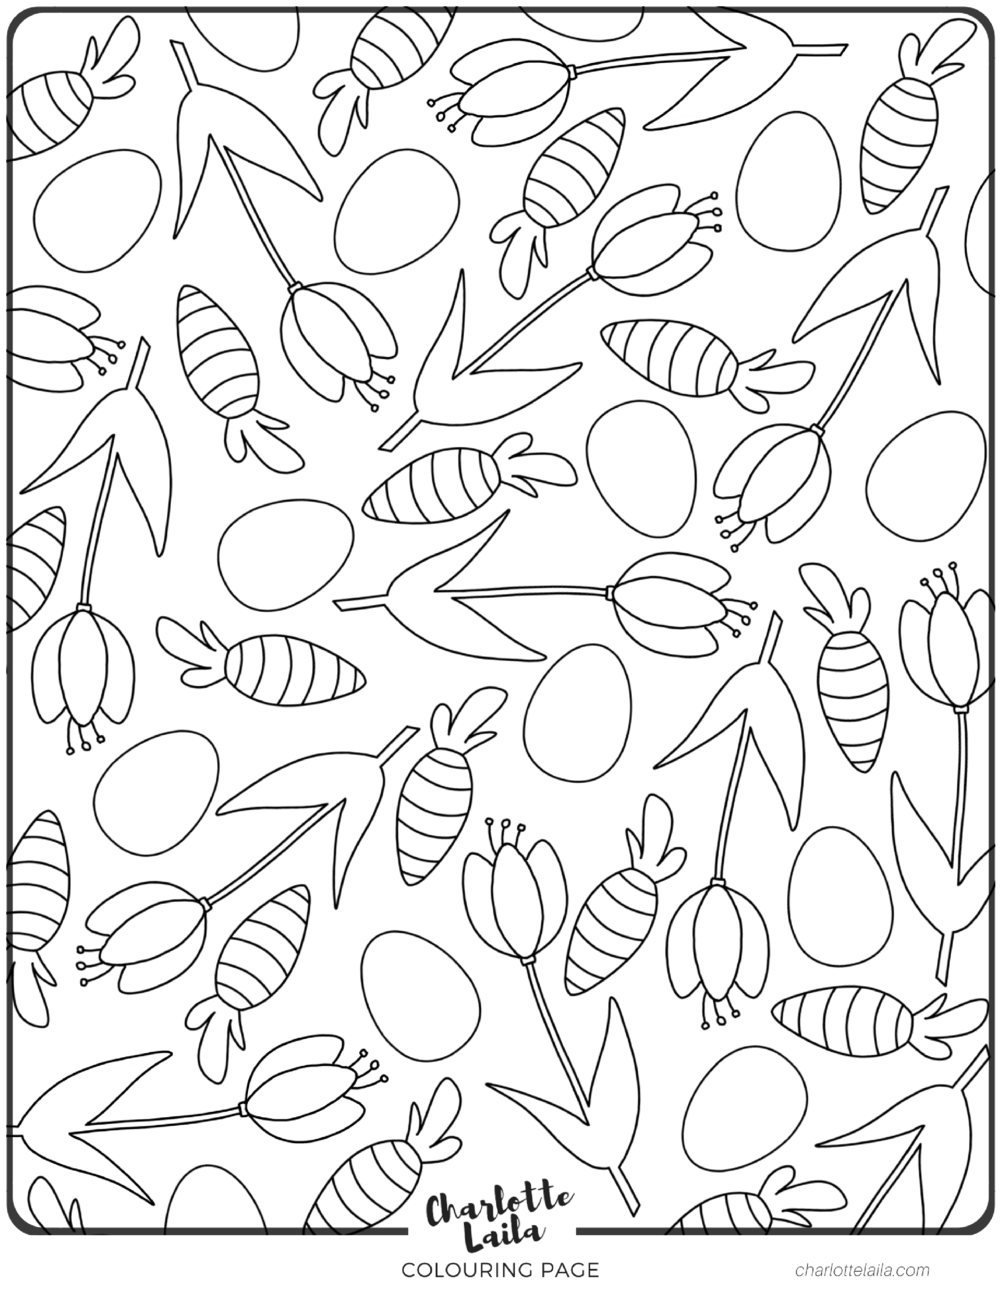 Charlotte Laila Easter Colouring Page.png